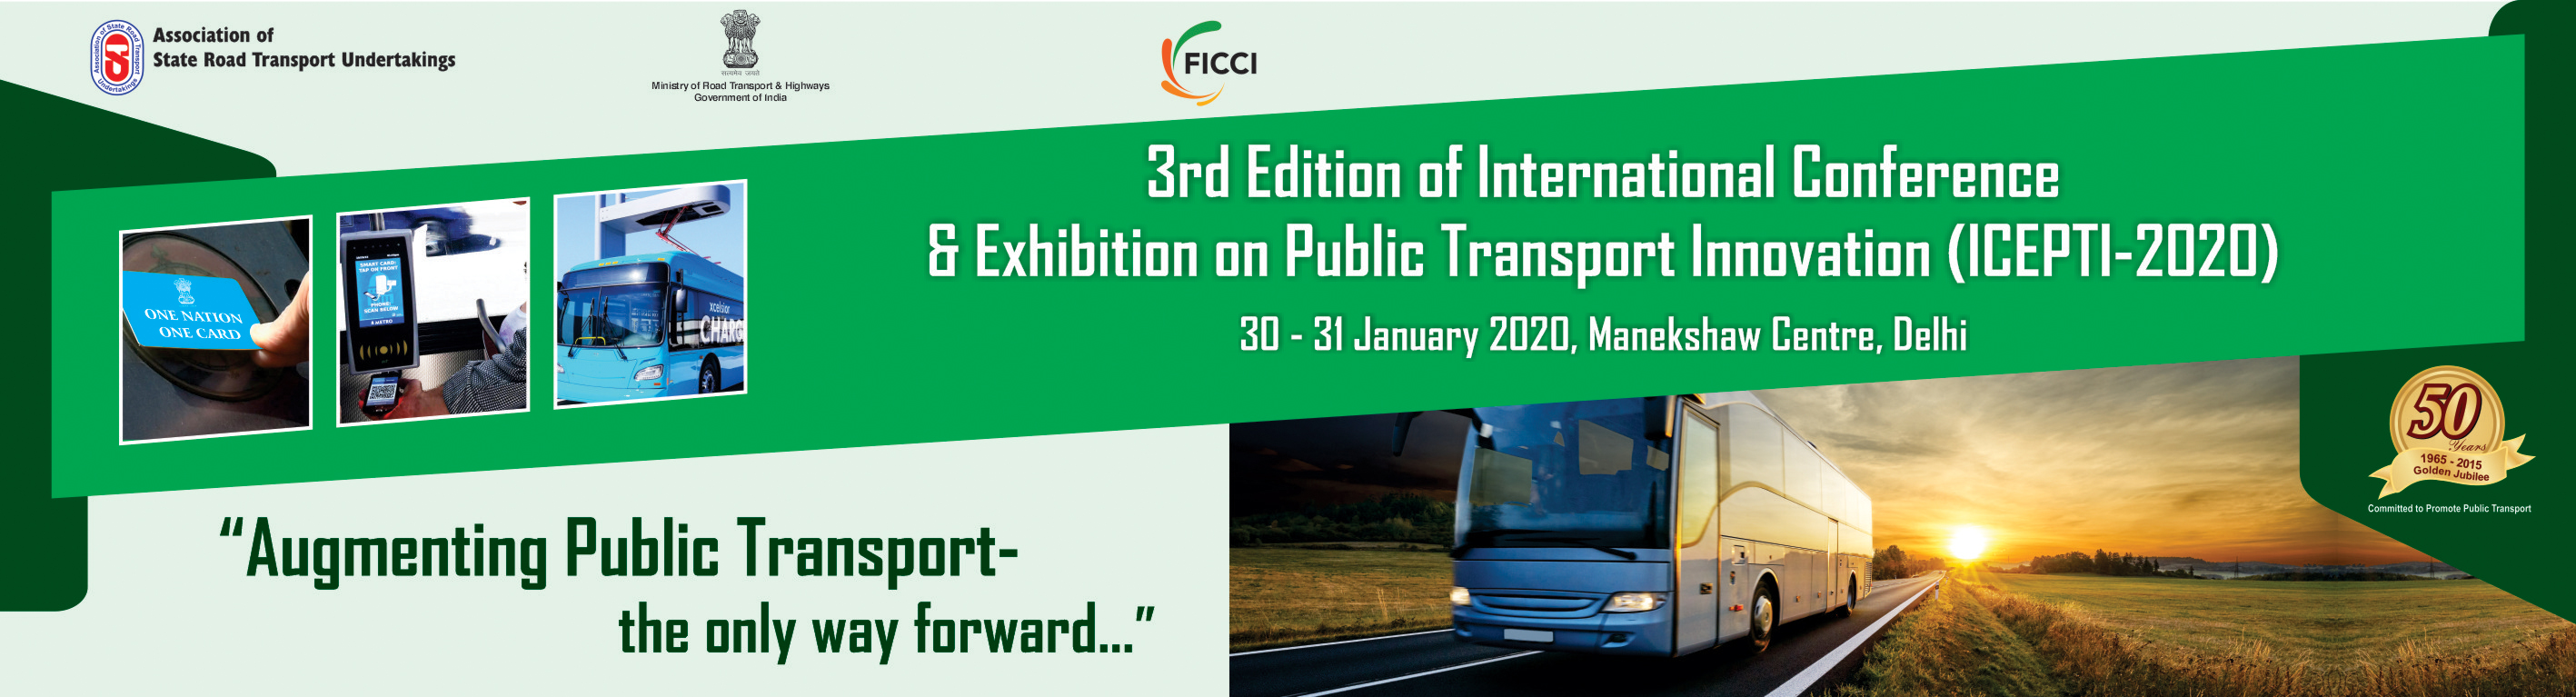 3rd Edition of International Conference and Exhibition on Public Transport Innovation